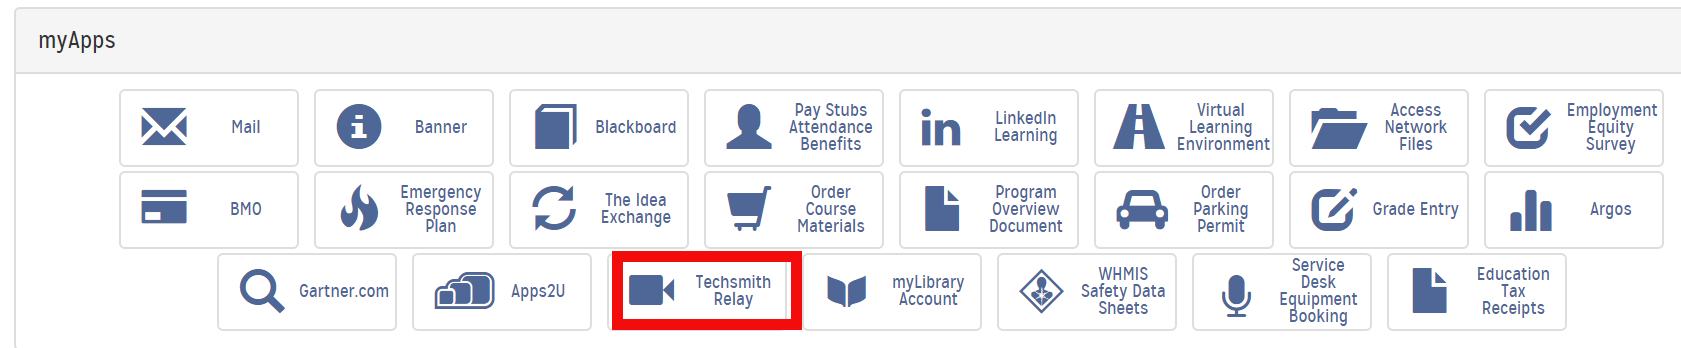 Techsmith Relay Icon outlined in red on the my loyalist portal